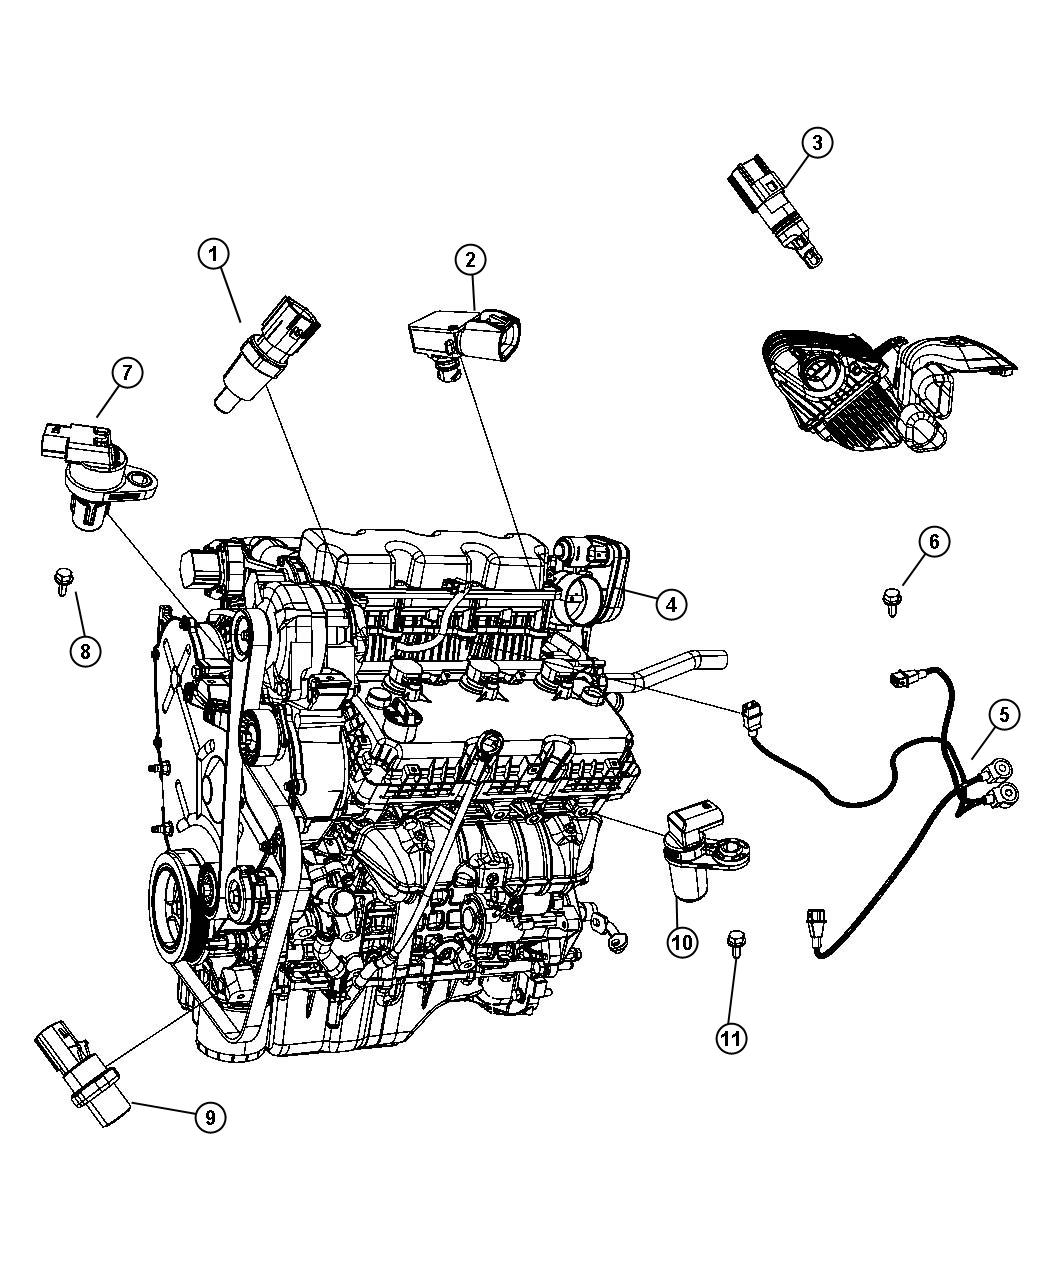 2005 dodge stratus 2 4l engine diagram  dodge  auto wiring